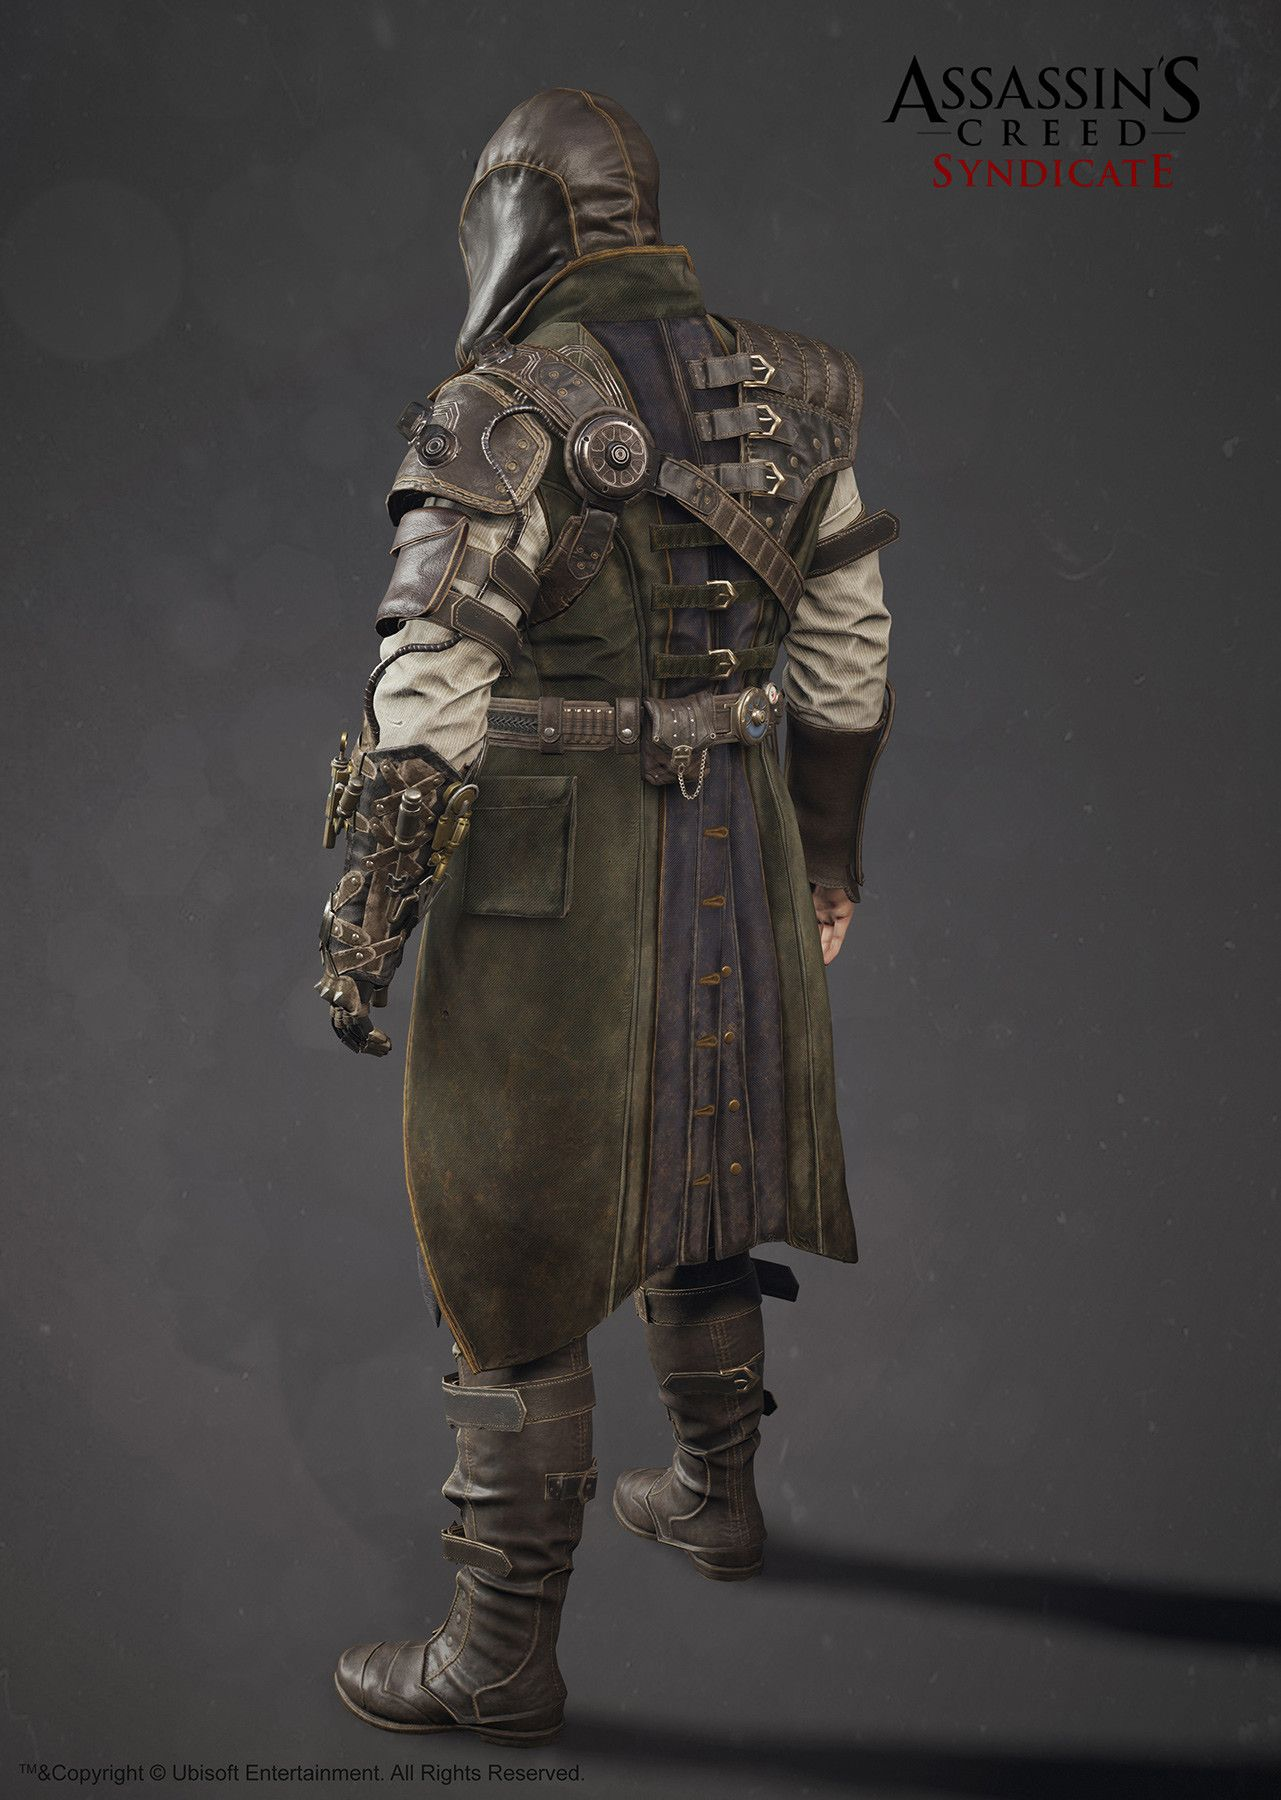 assassinand 39 s creed syndicate. artstation - assassin\u0027s creed syndicate steampunk jacob, alexis belley assassinand 39 s